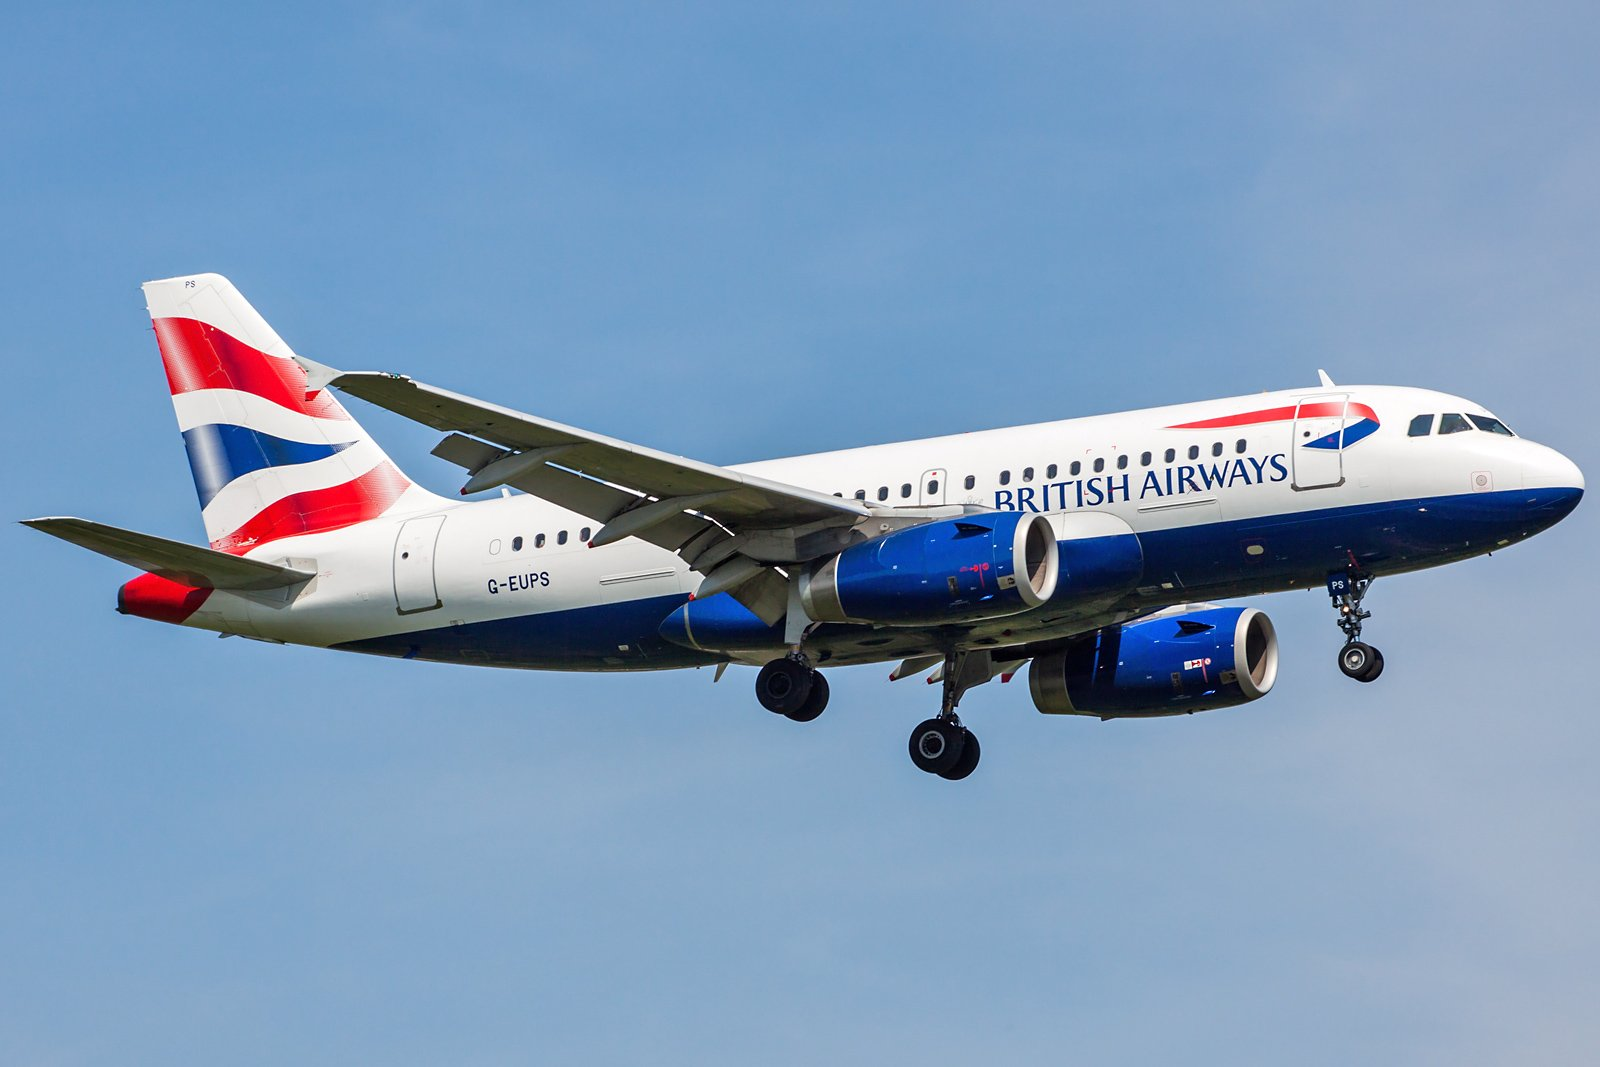 British Airways Airbus A319-131 G-EUPS